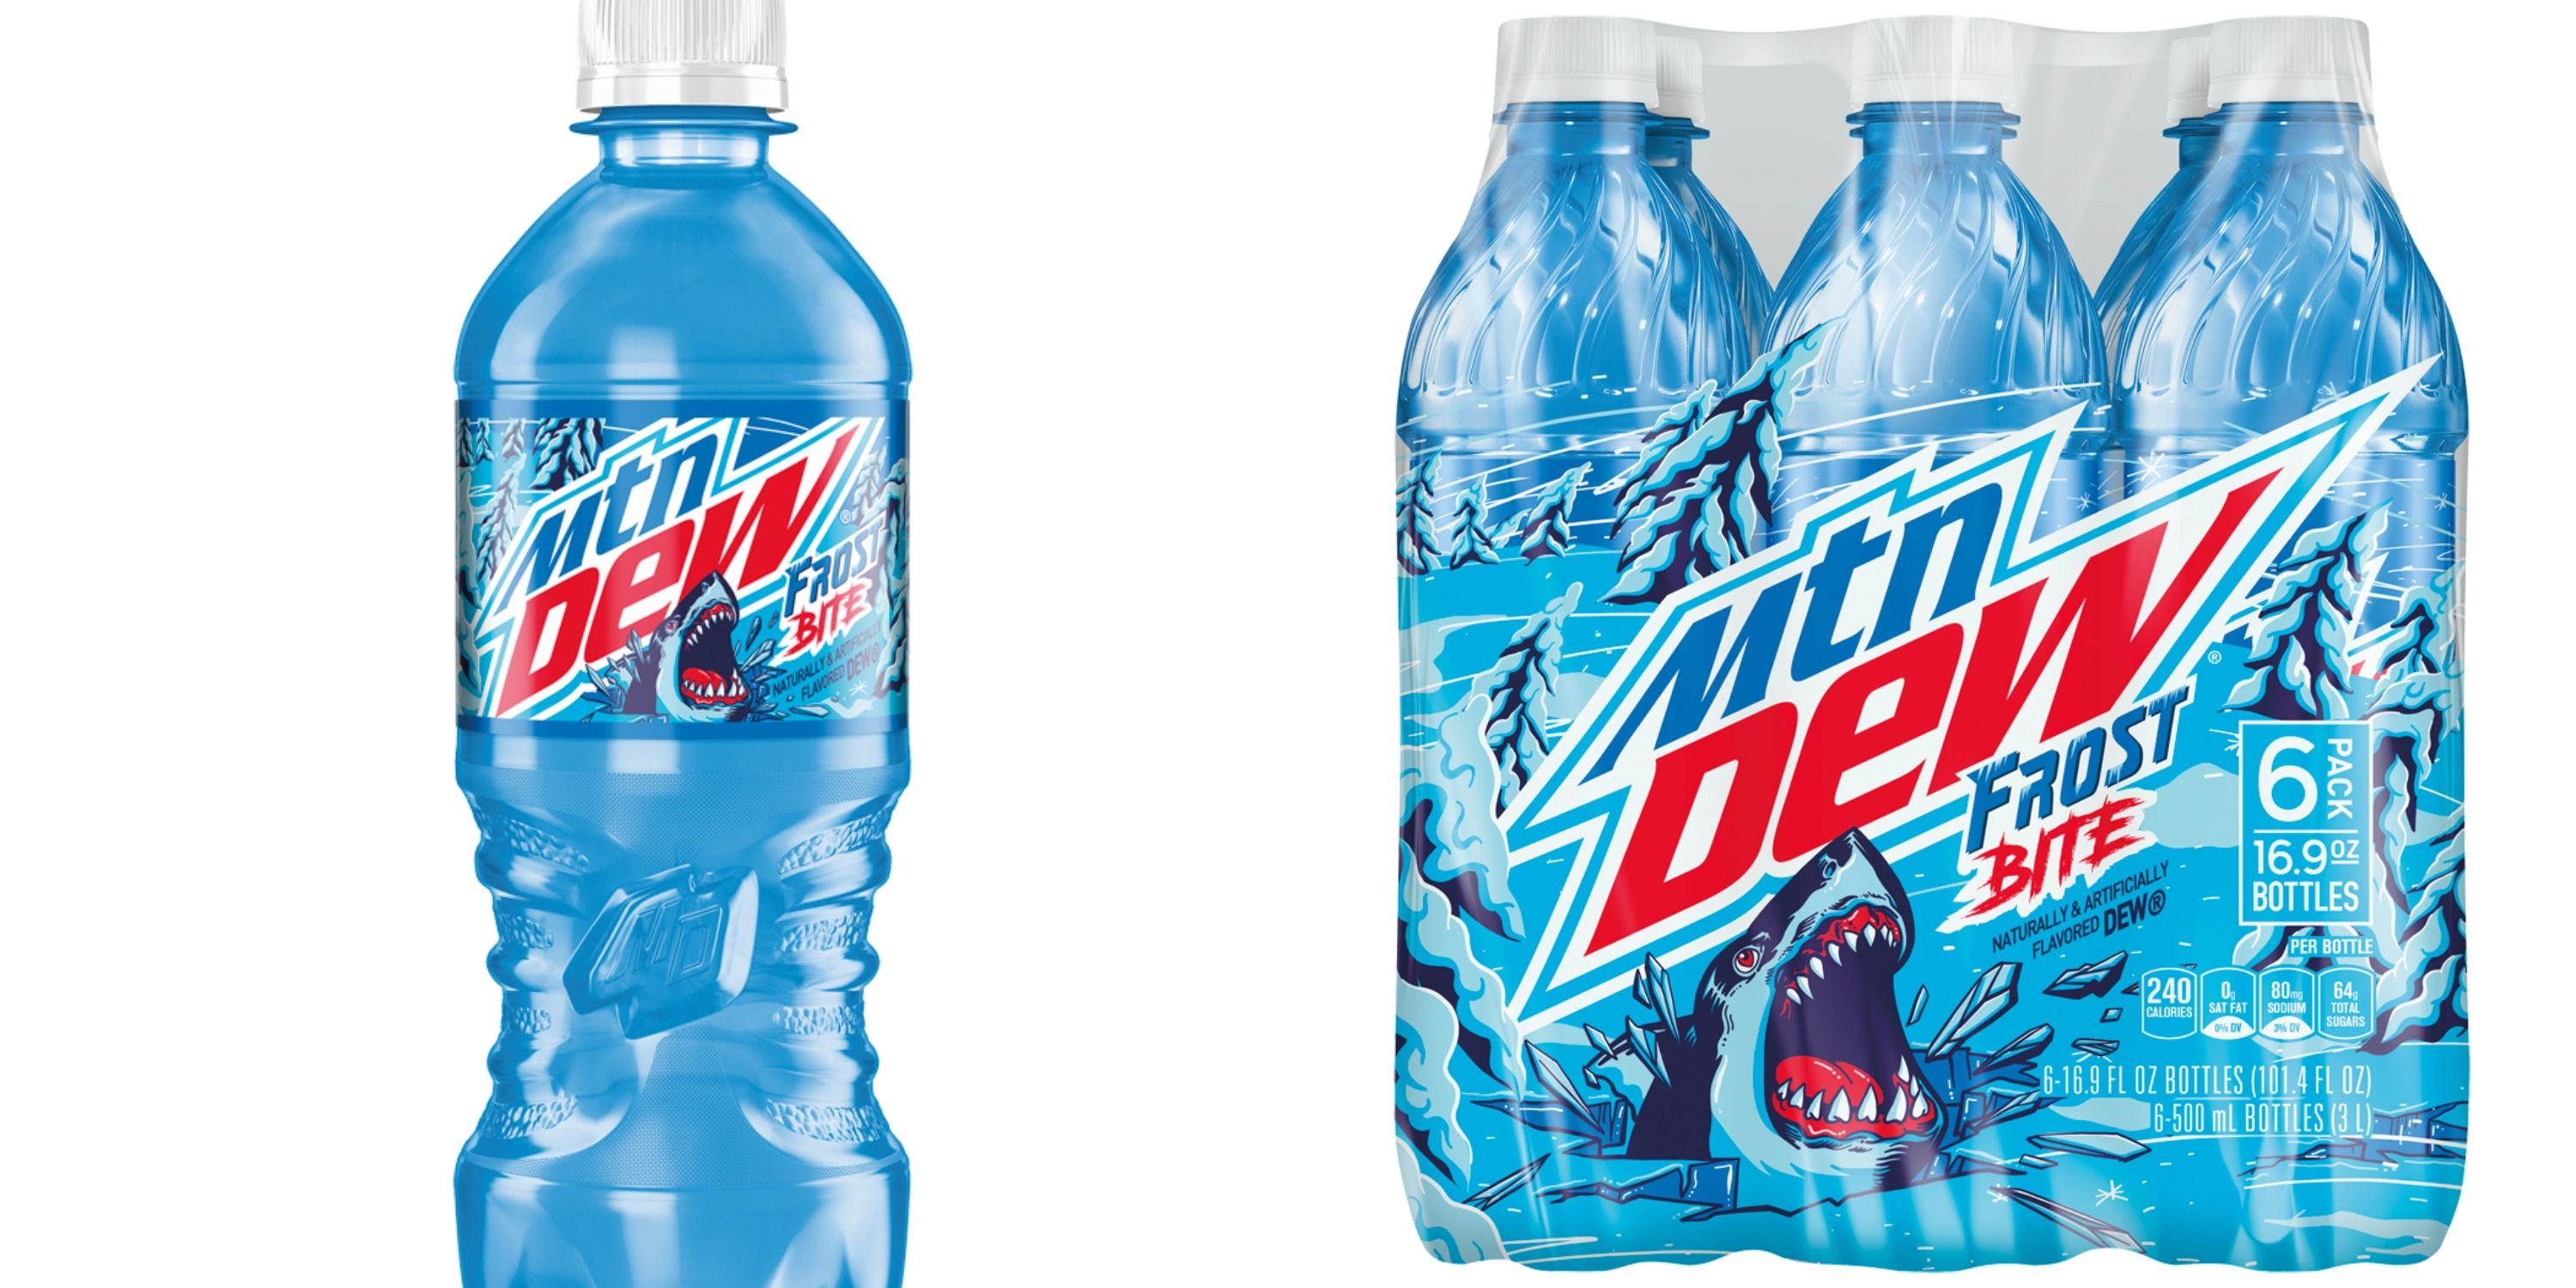 Mountain Dew's Newest Flavor Frost Bite Tastes Like Cool Melon